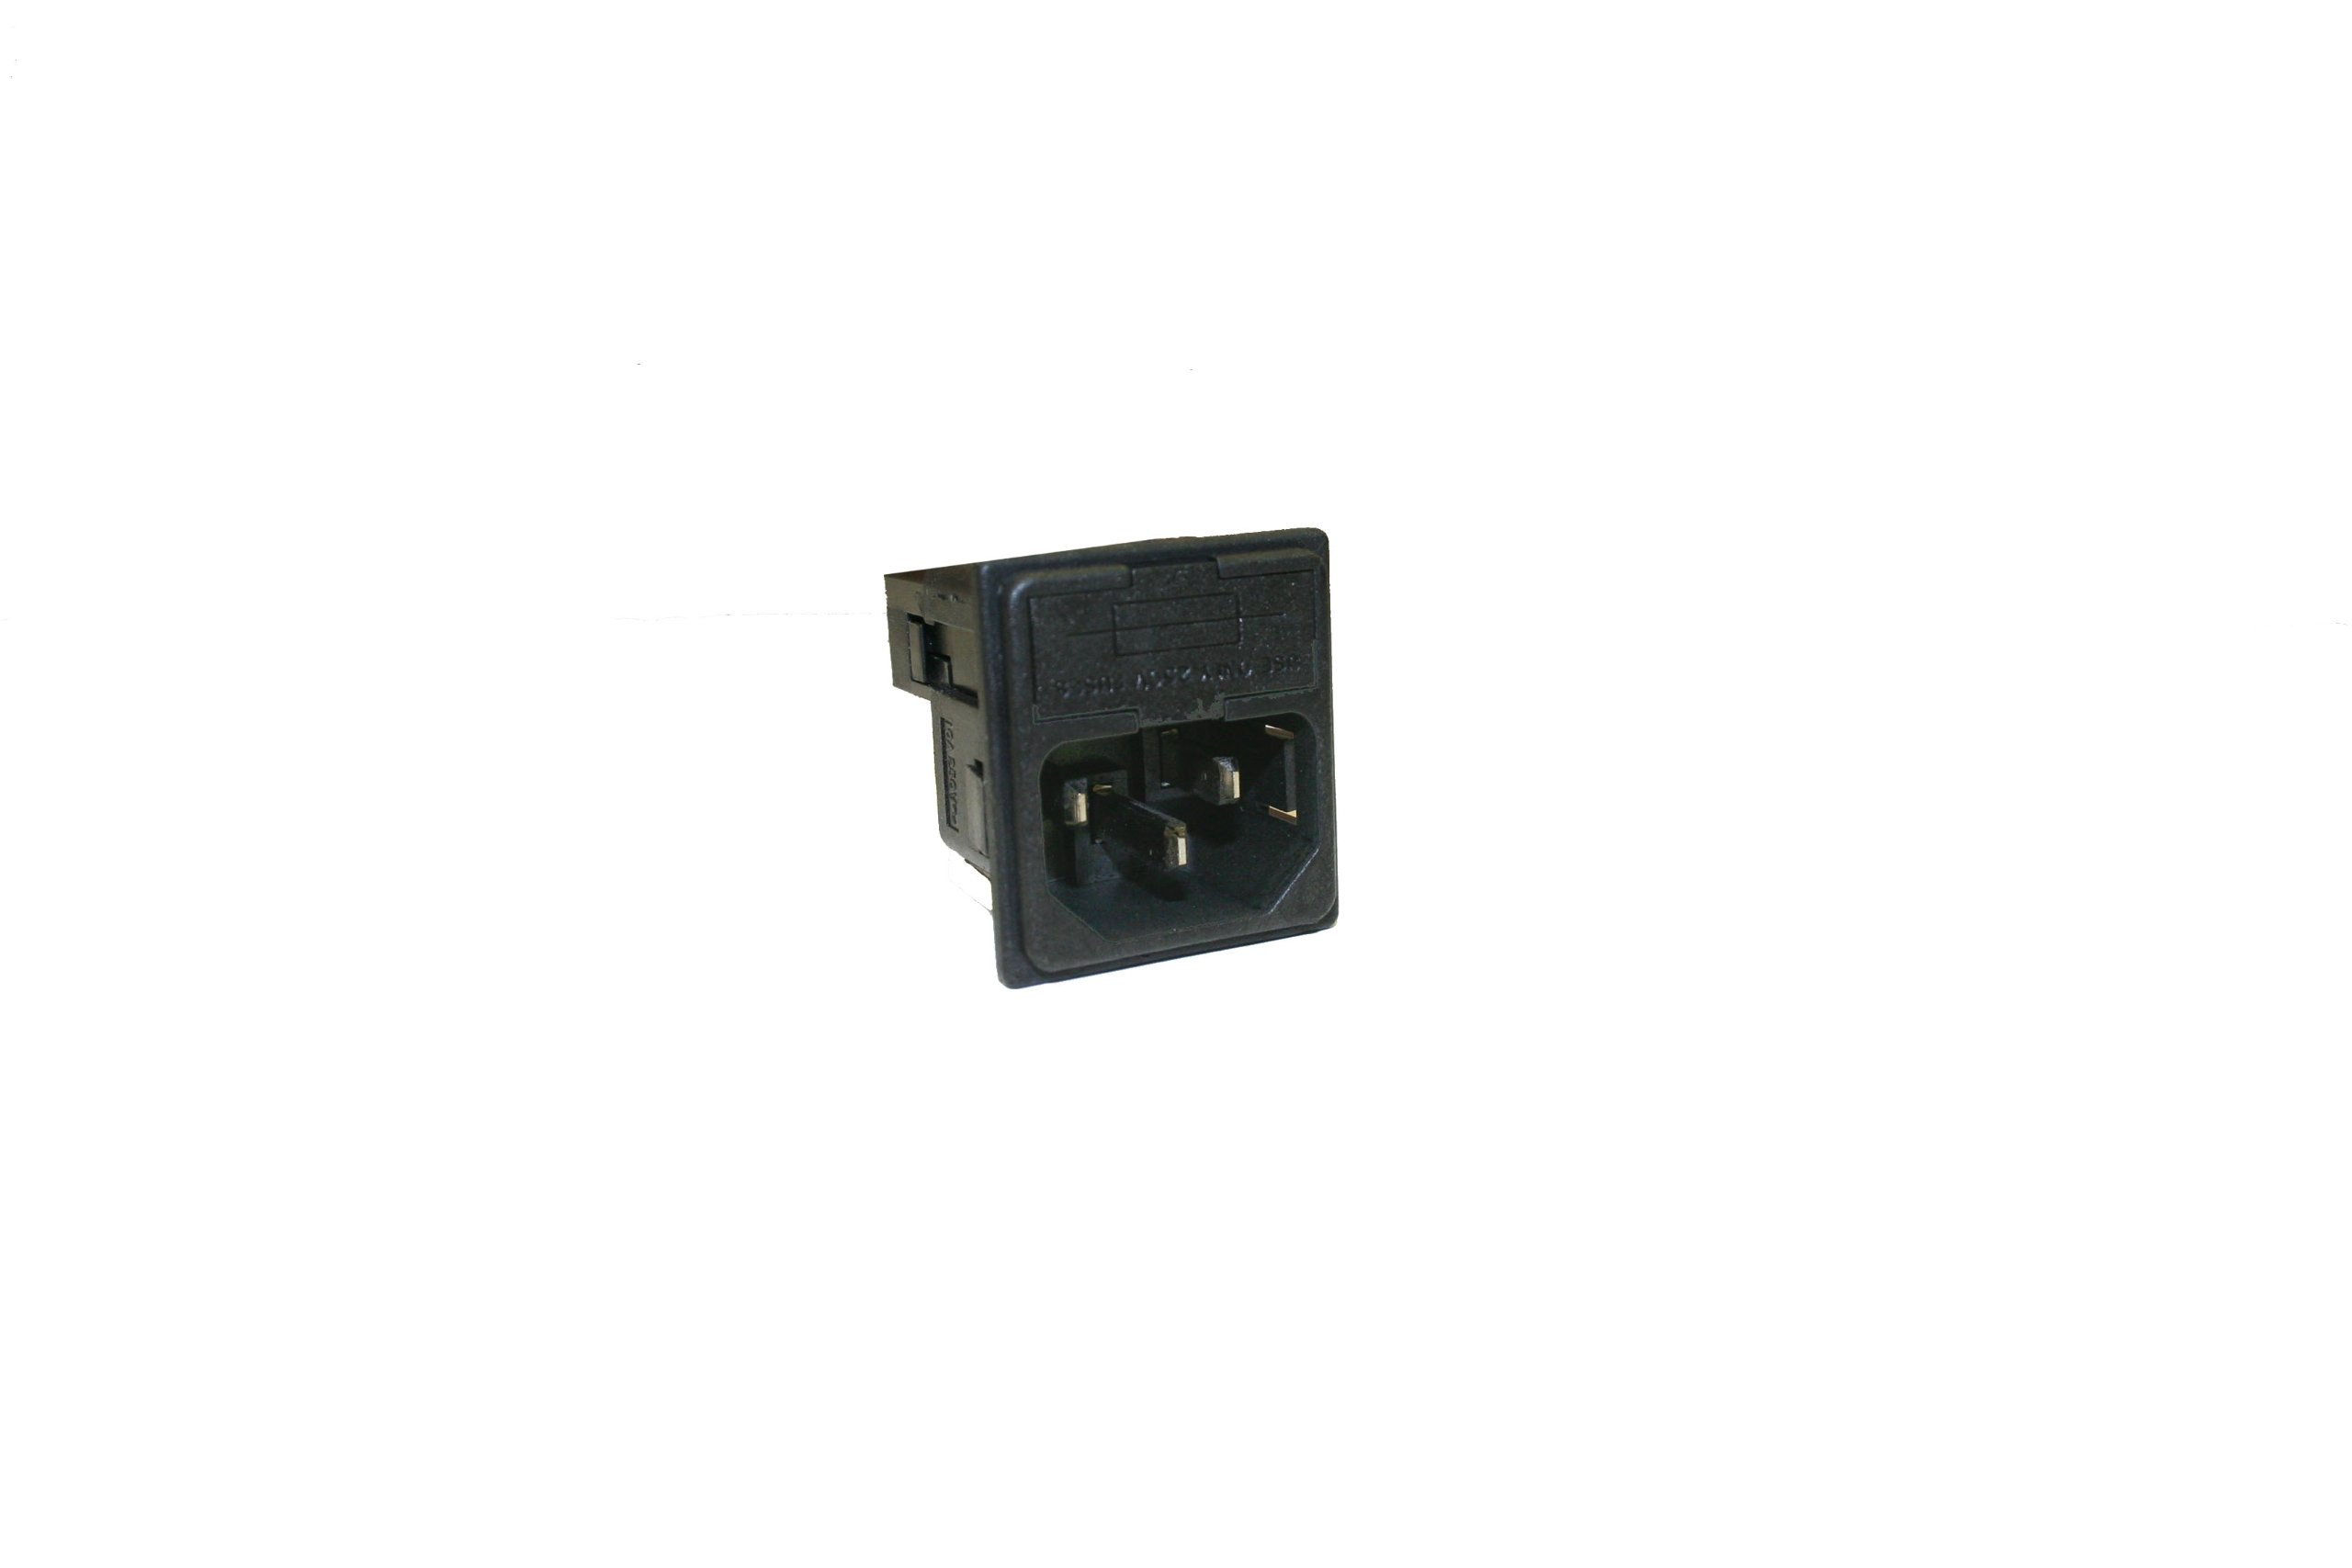 Interpower 83110180 Two Function Double Fused Module, C14 Inlet, Double Fused, 1.5mm Panel Thickness, 10A Current Rating, 250VAC Voltage Rating by Interpower